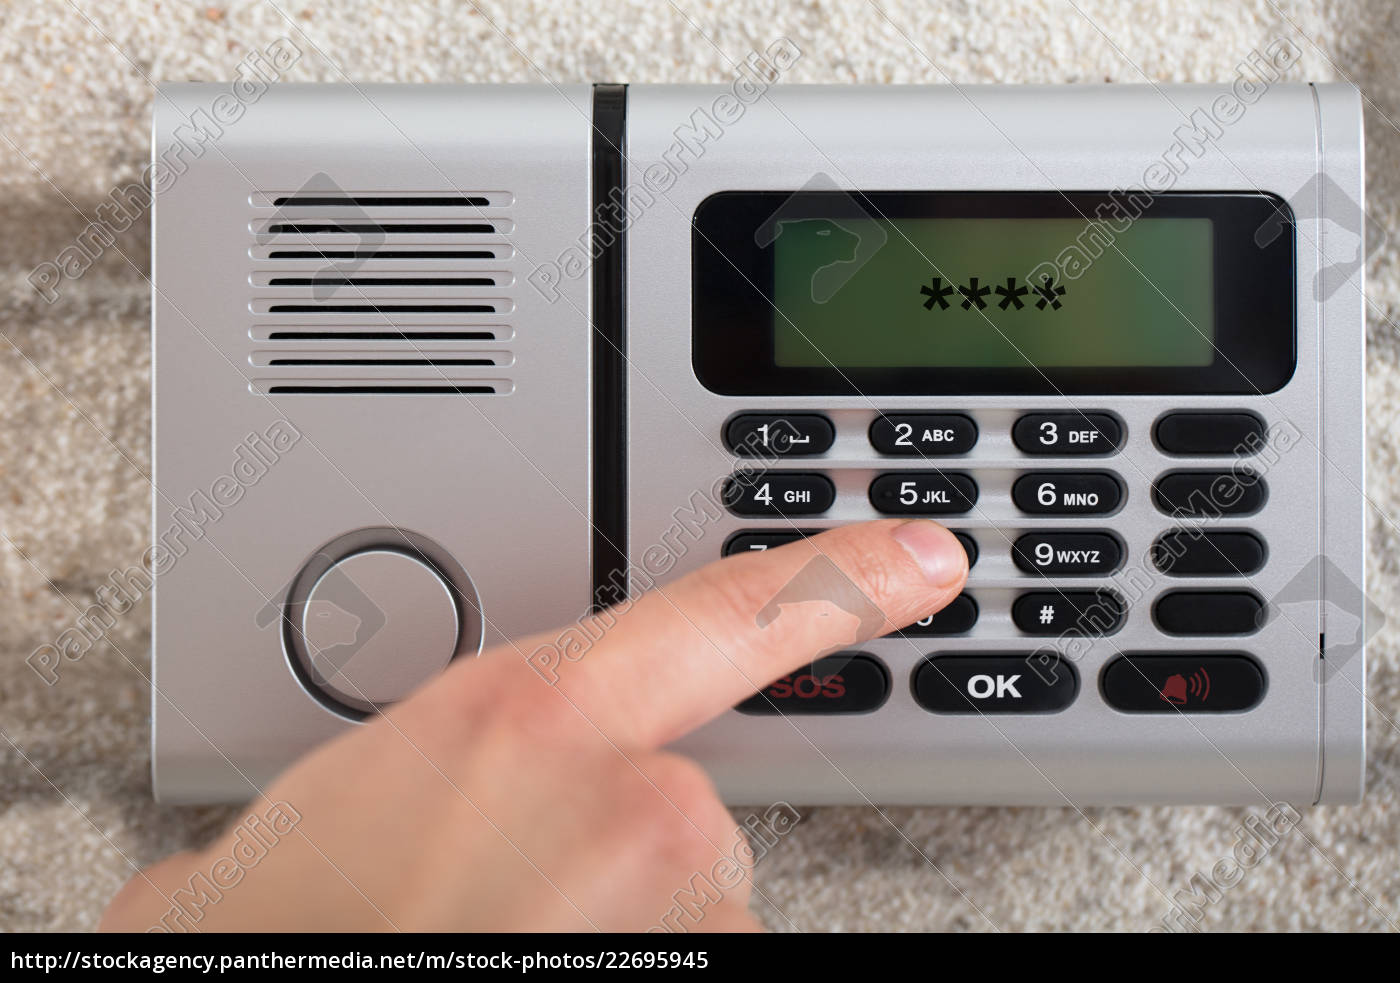 human, hand, entering, security, system, code - 22695945